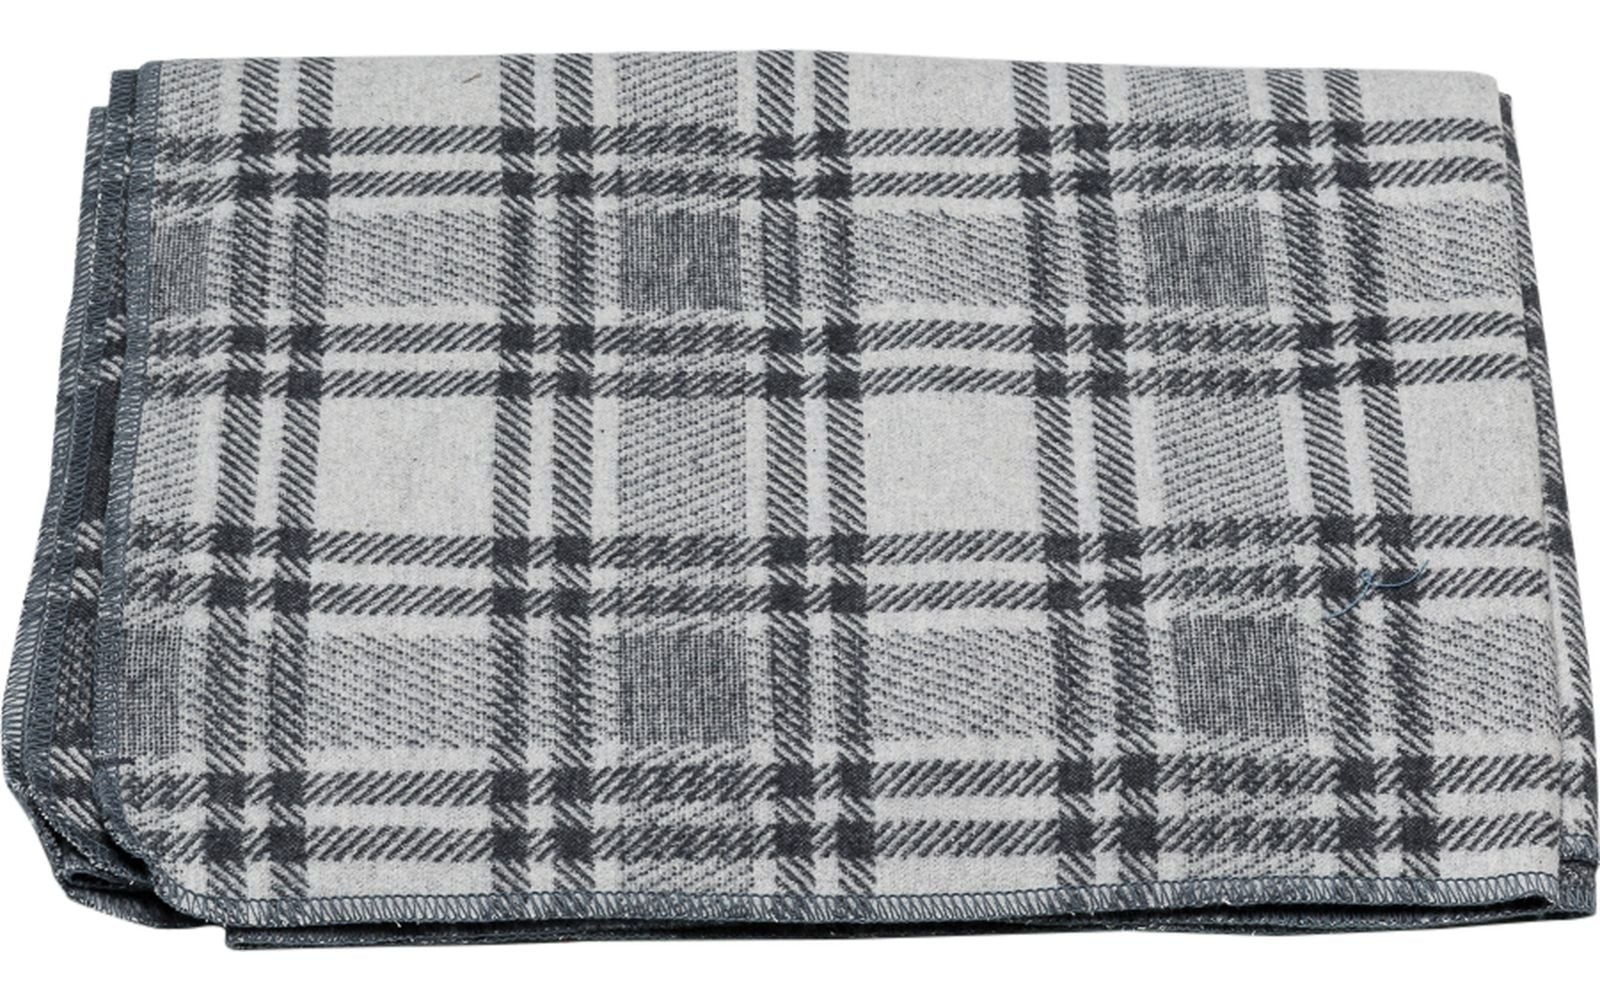 Blanket - Checkered - Charcoal-2